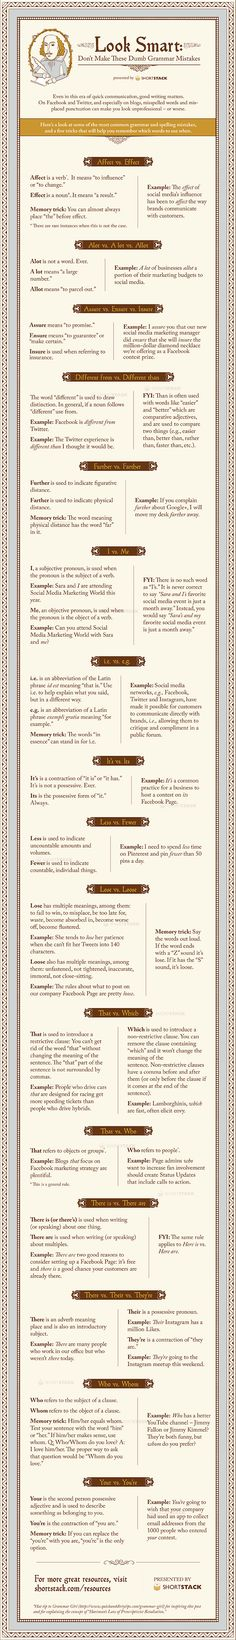 Don't make anymore grammar mistakes and spelling errors. Alexander's shares an infographic to help you avoid those common grammar pitfalls.